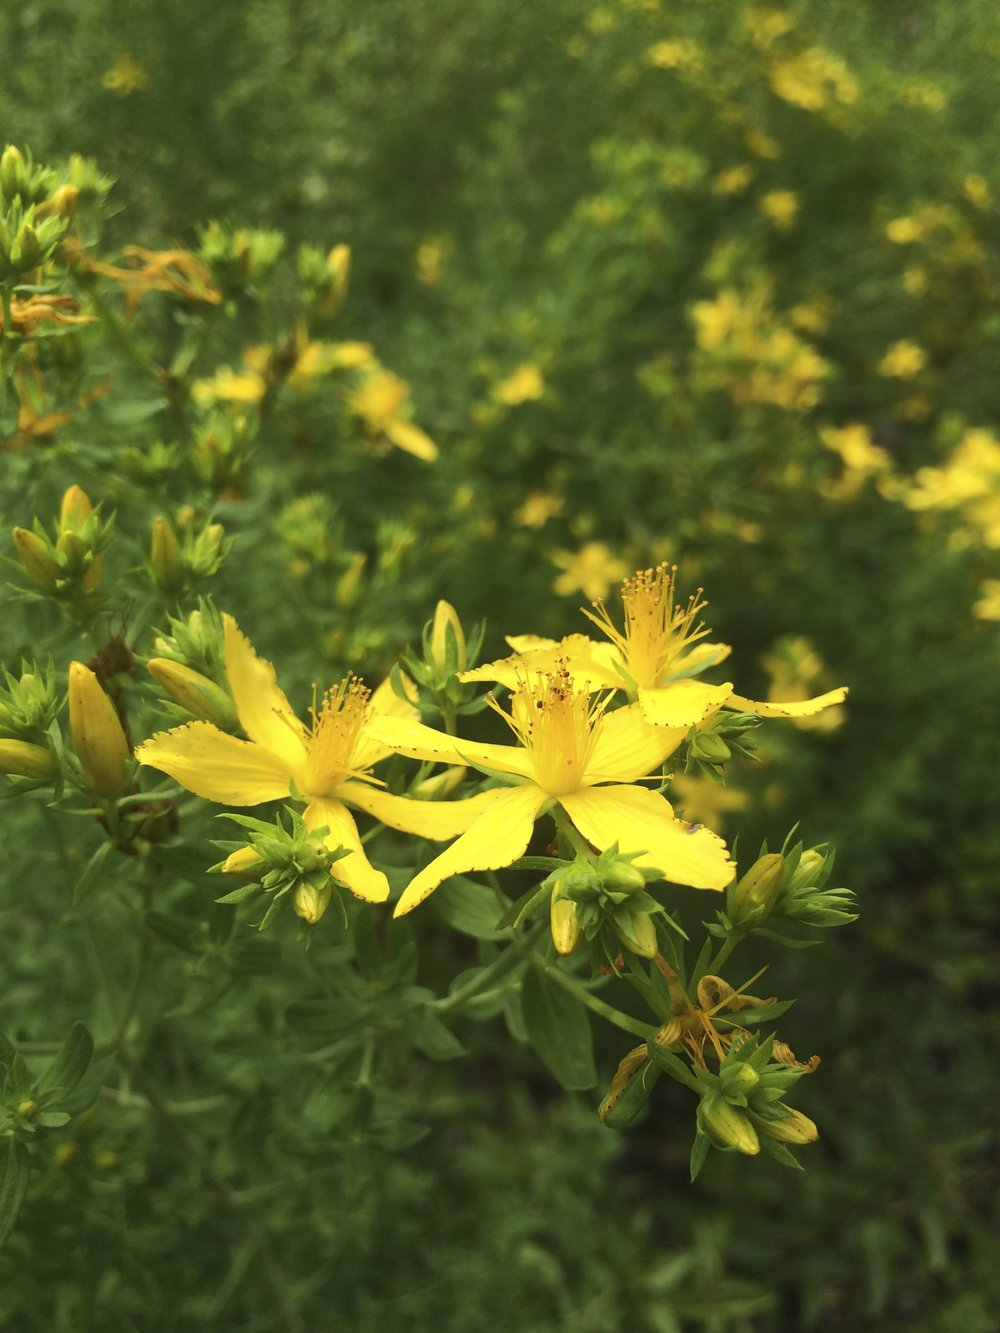 St. John's Wort blooming in the medicinal herb garden.